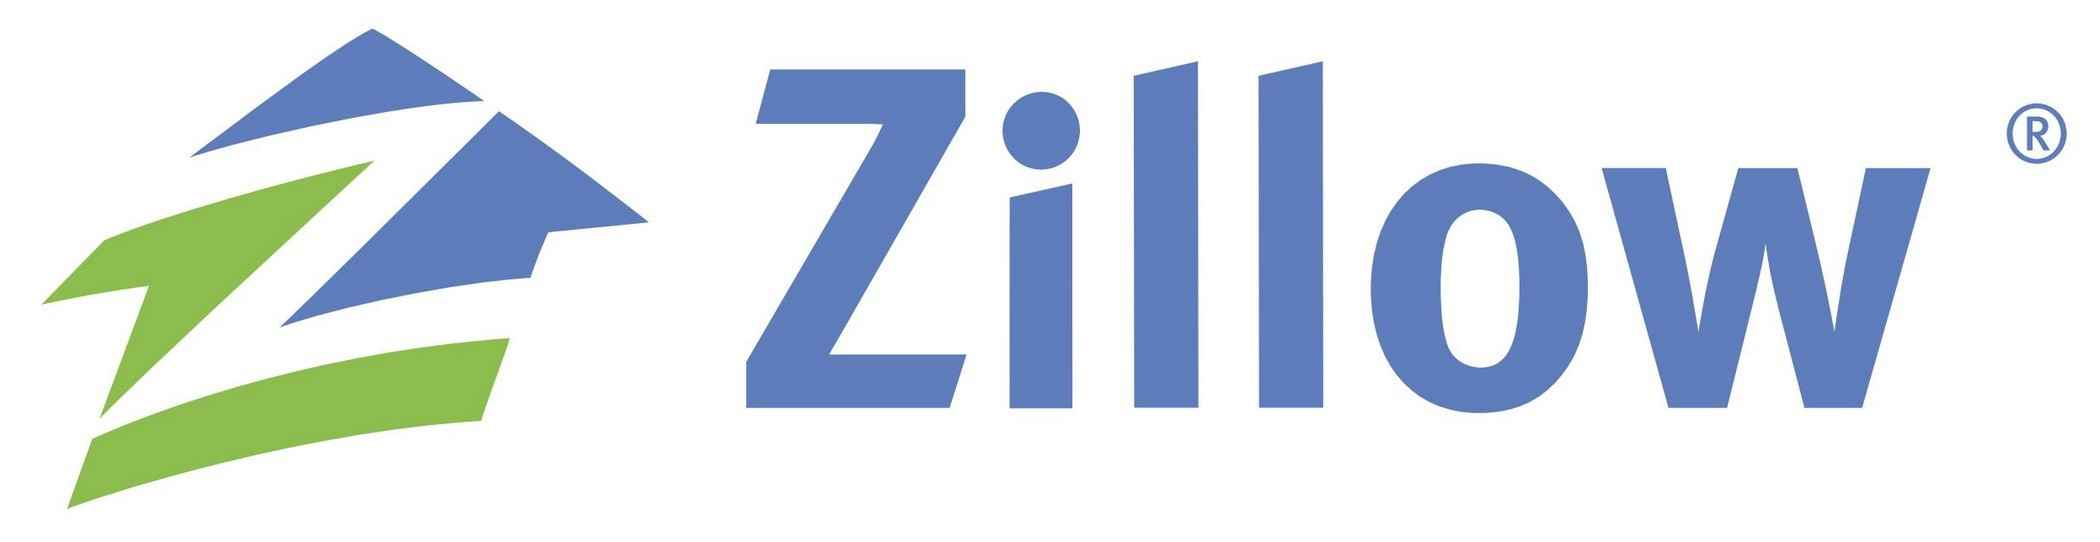 Zillow Logo [EPS File] png